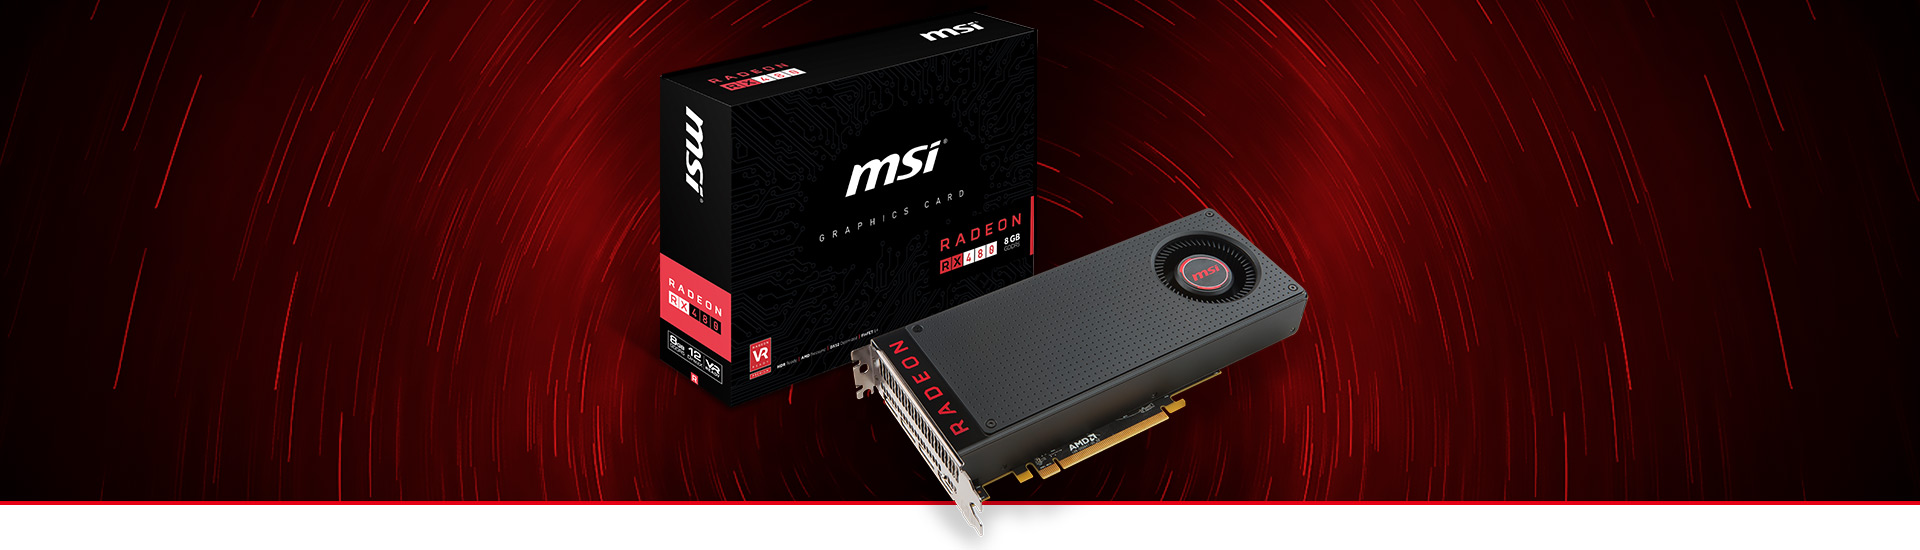 2016 06 rx480 launch 001 1 - MSI RX480 Released